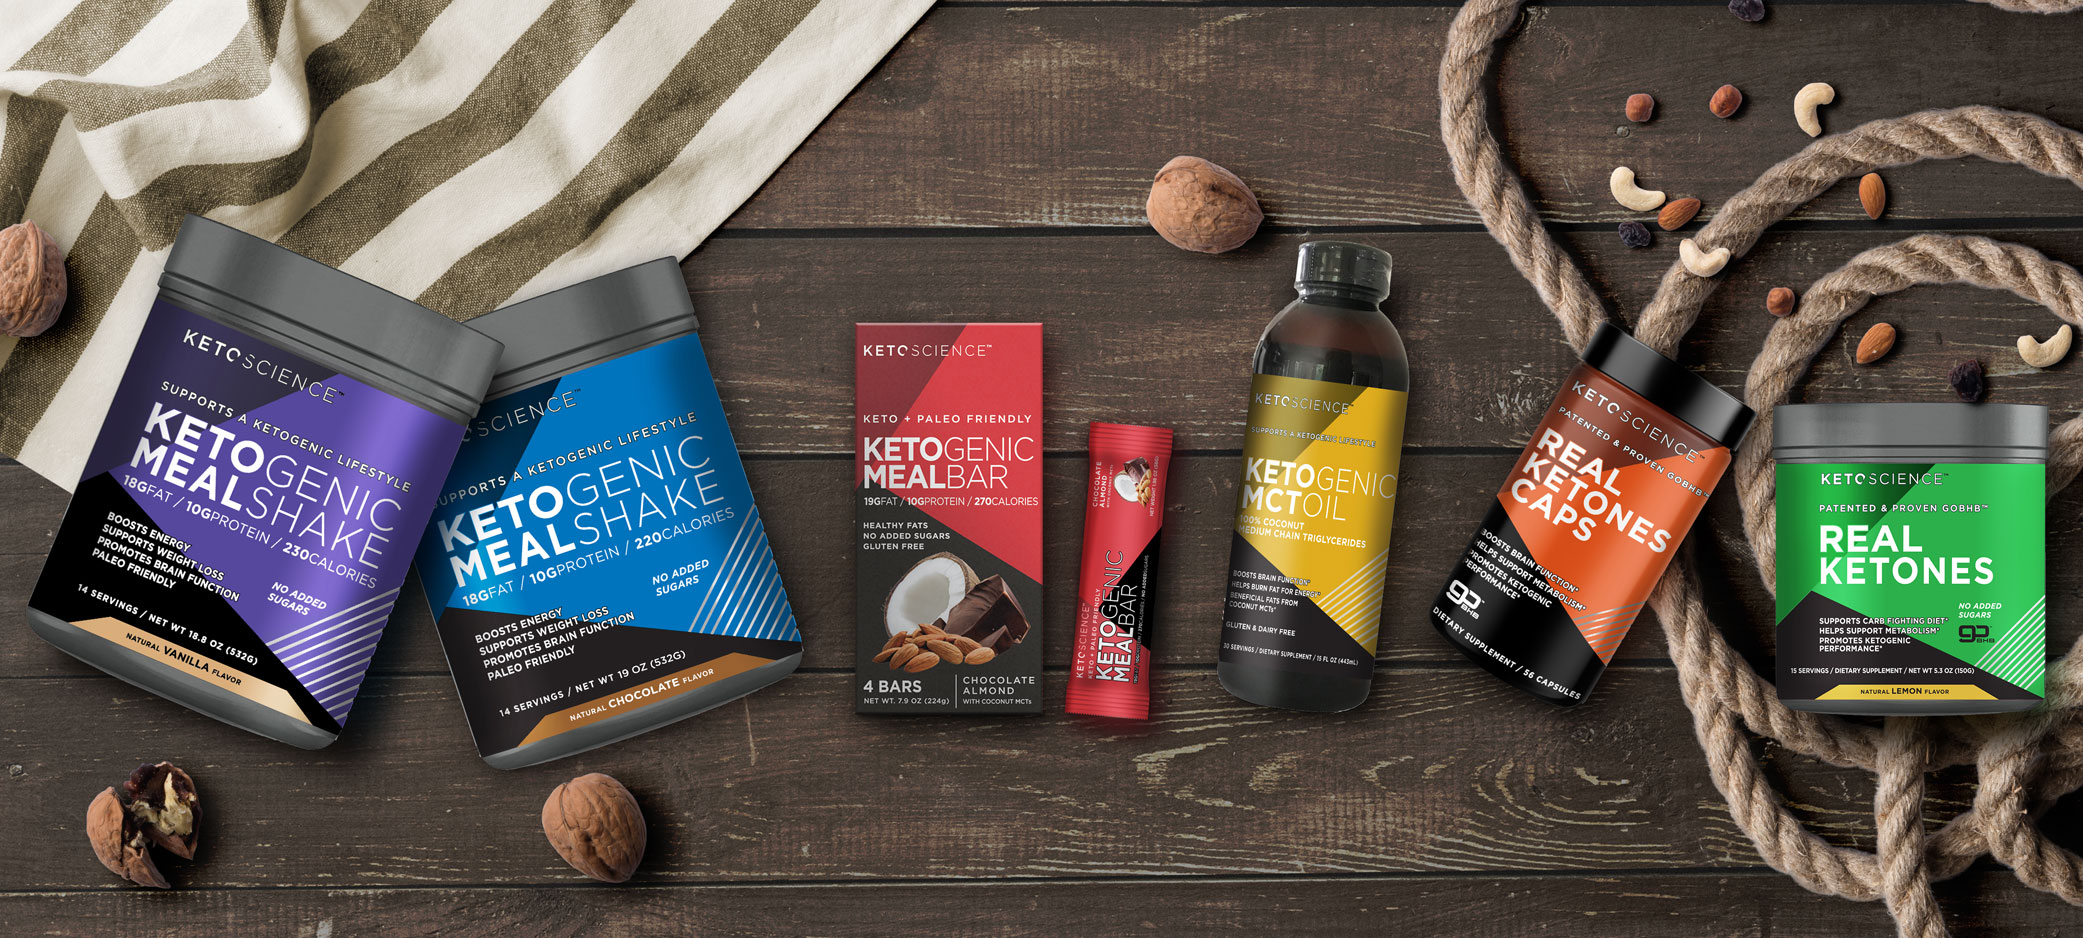 Ketoscience_package_design